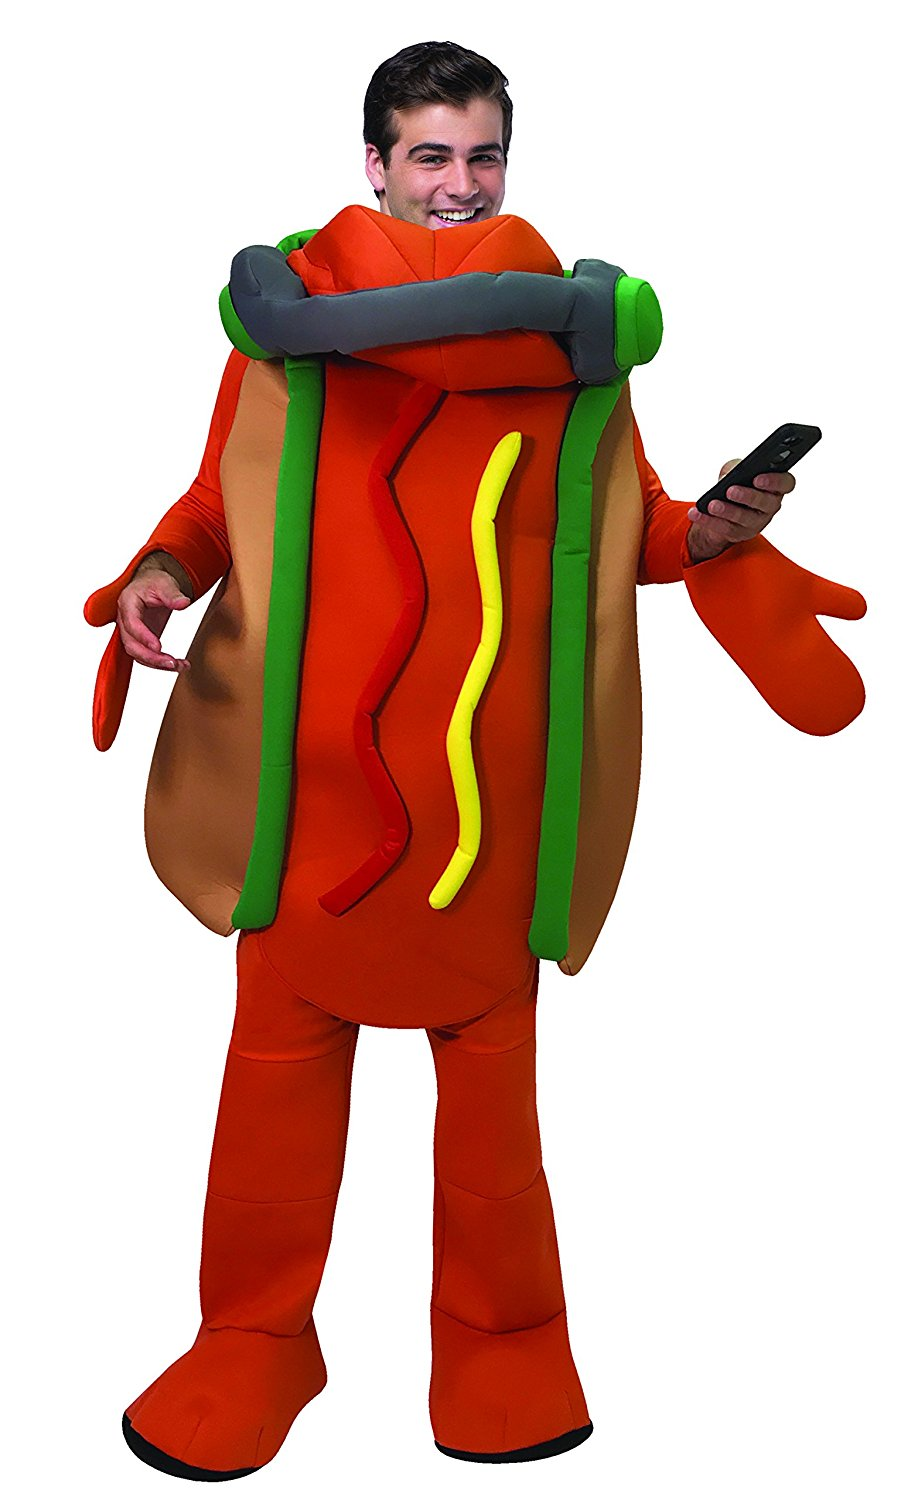 snapchat-dancing-hot-dog-costume-3